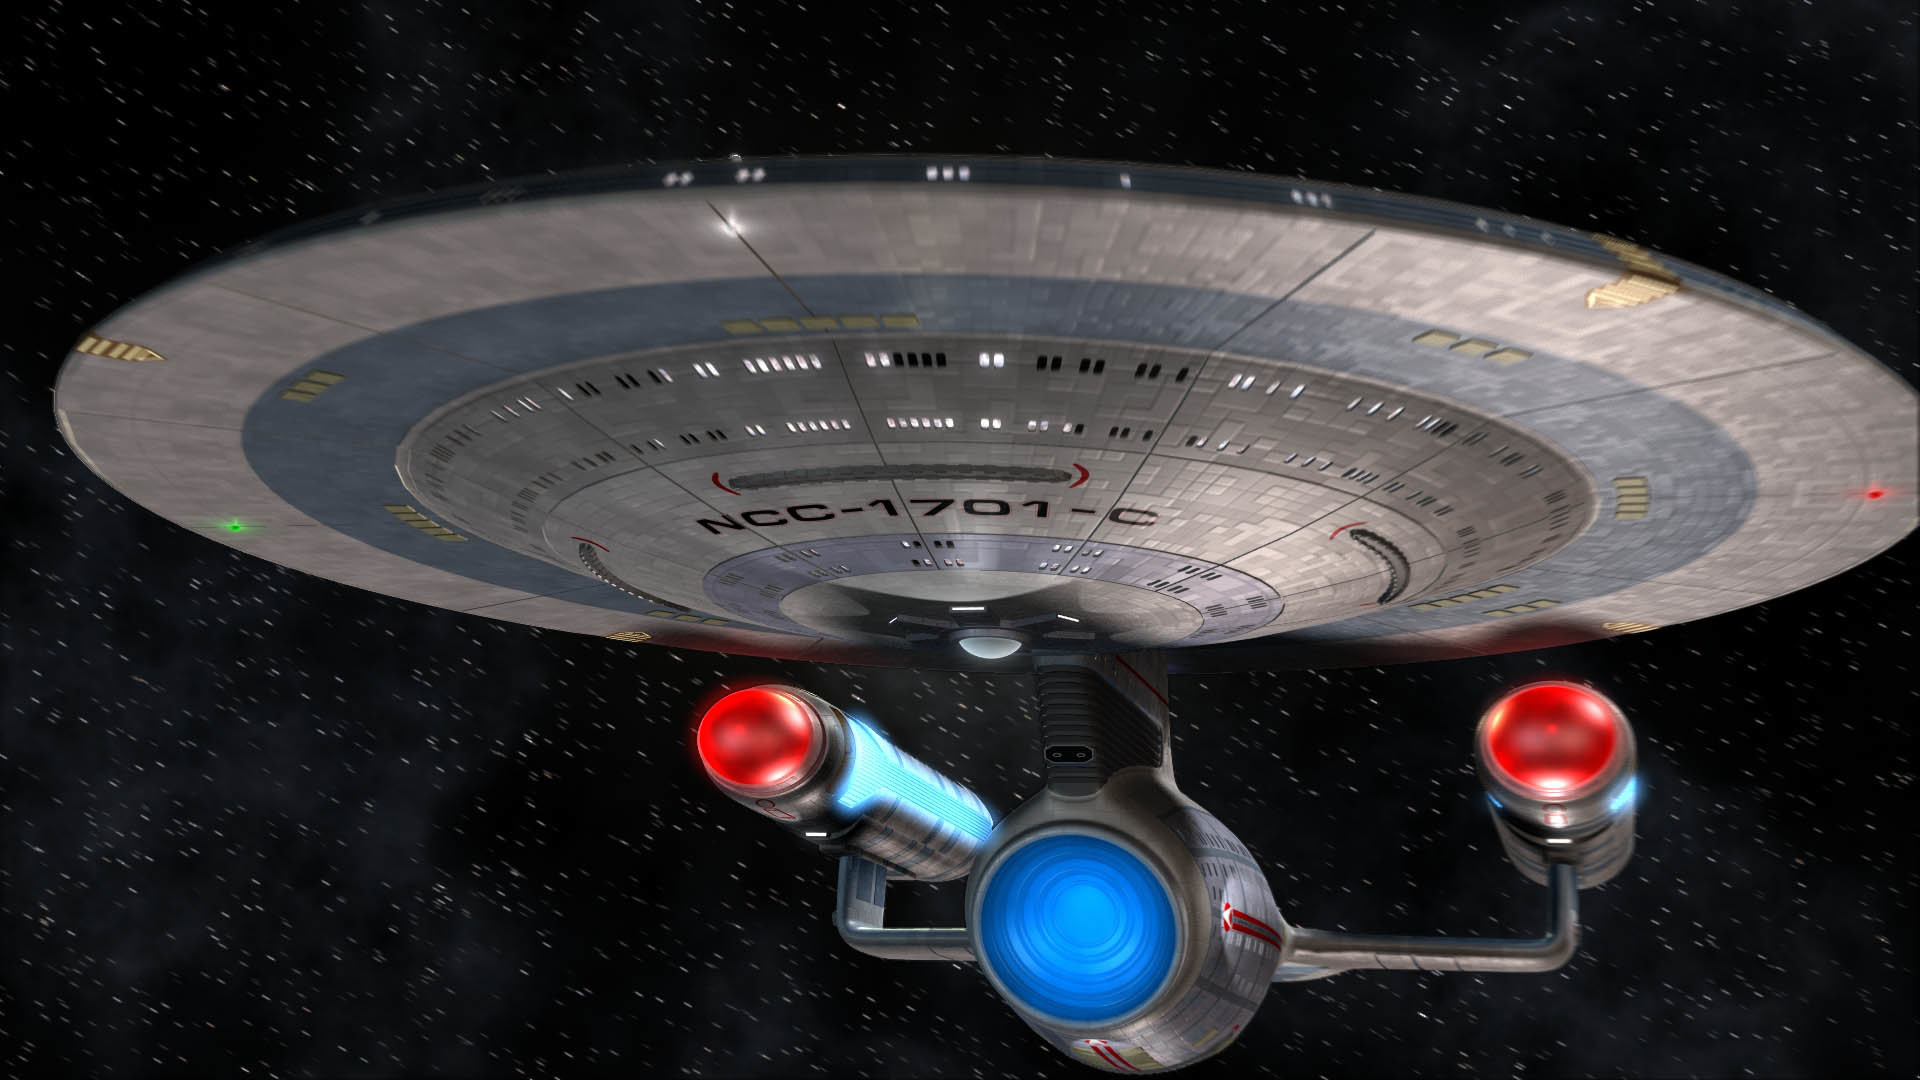 1920x1080 Enterprise NCC-1701-C